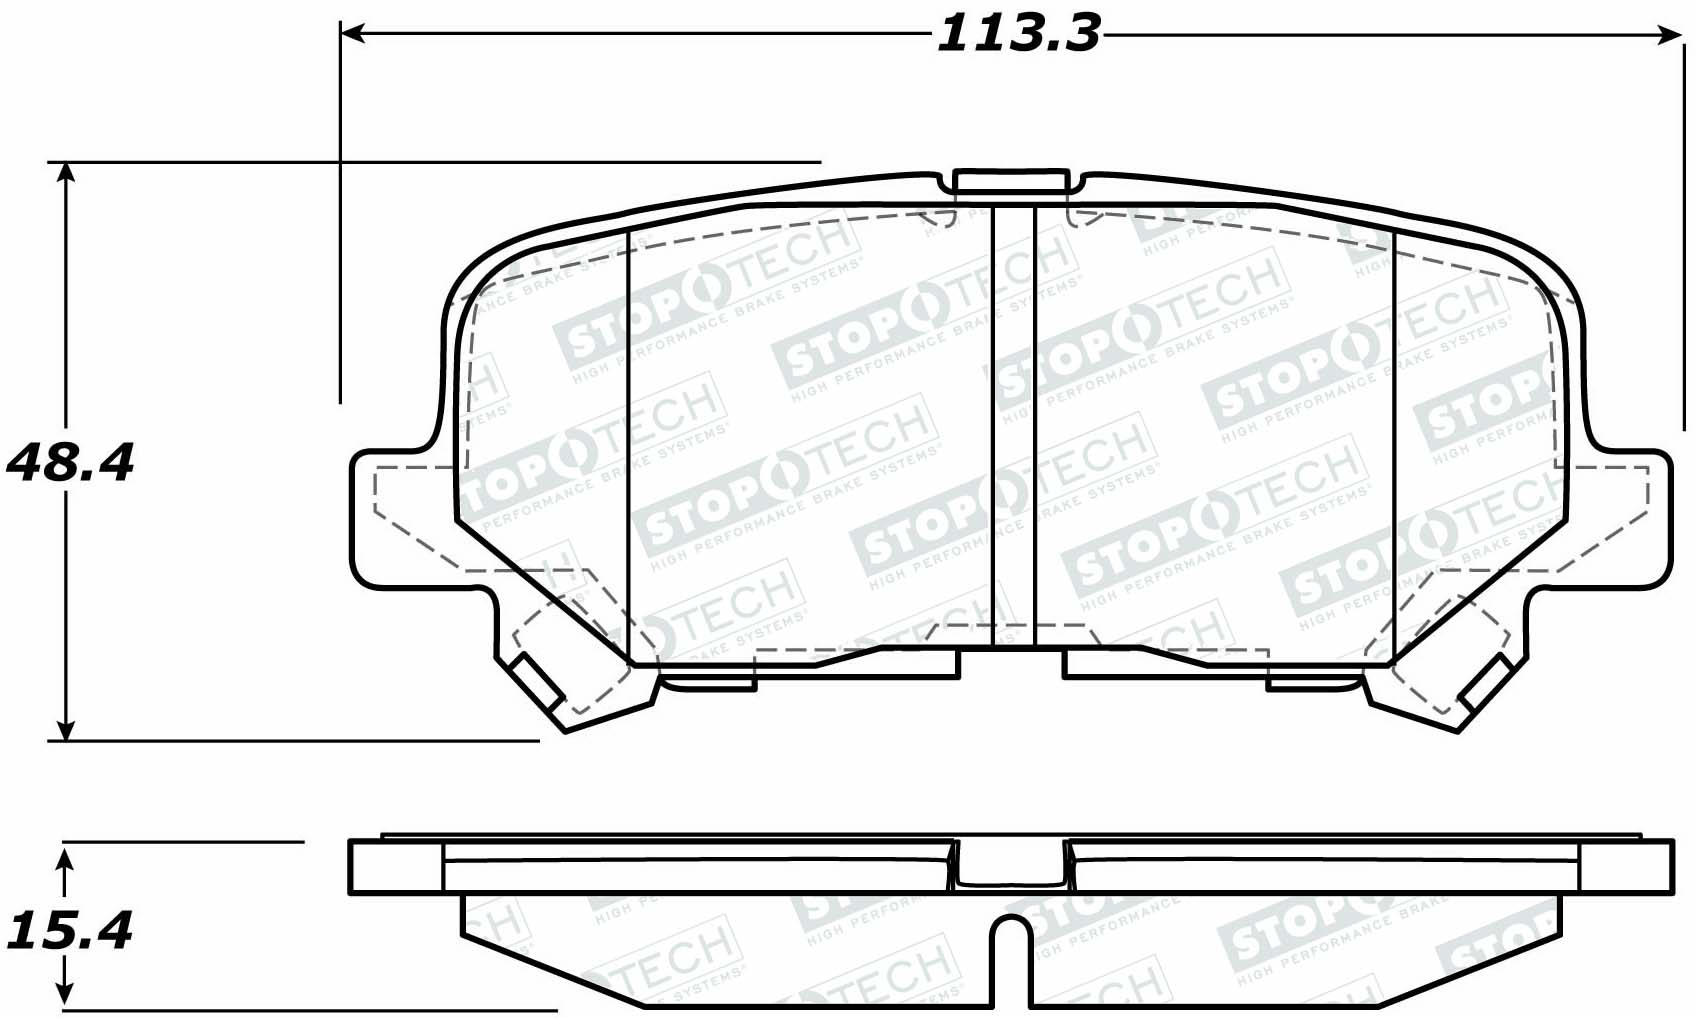 StopTech Disc Brake Pad Set Rear for Honda Pilot, Odyssey